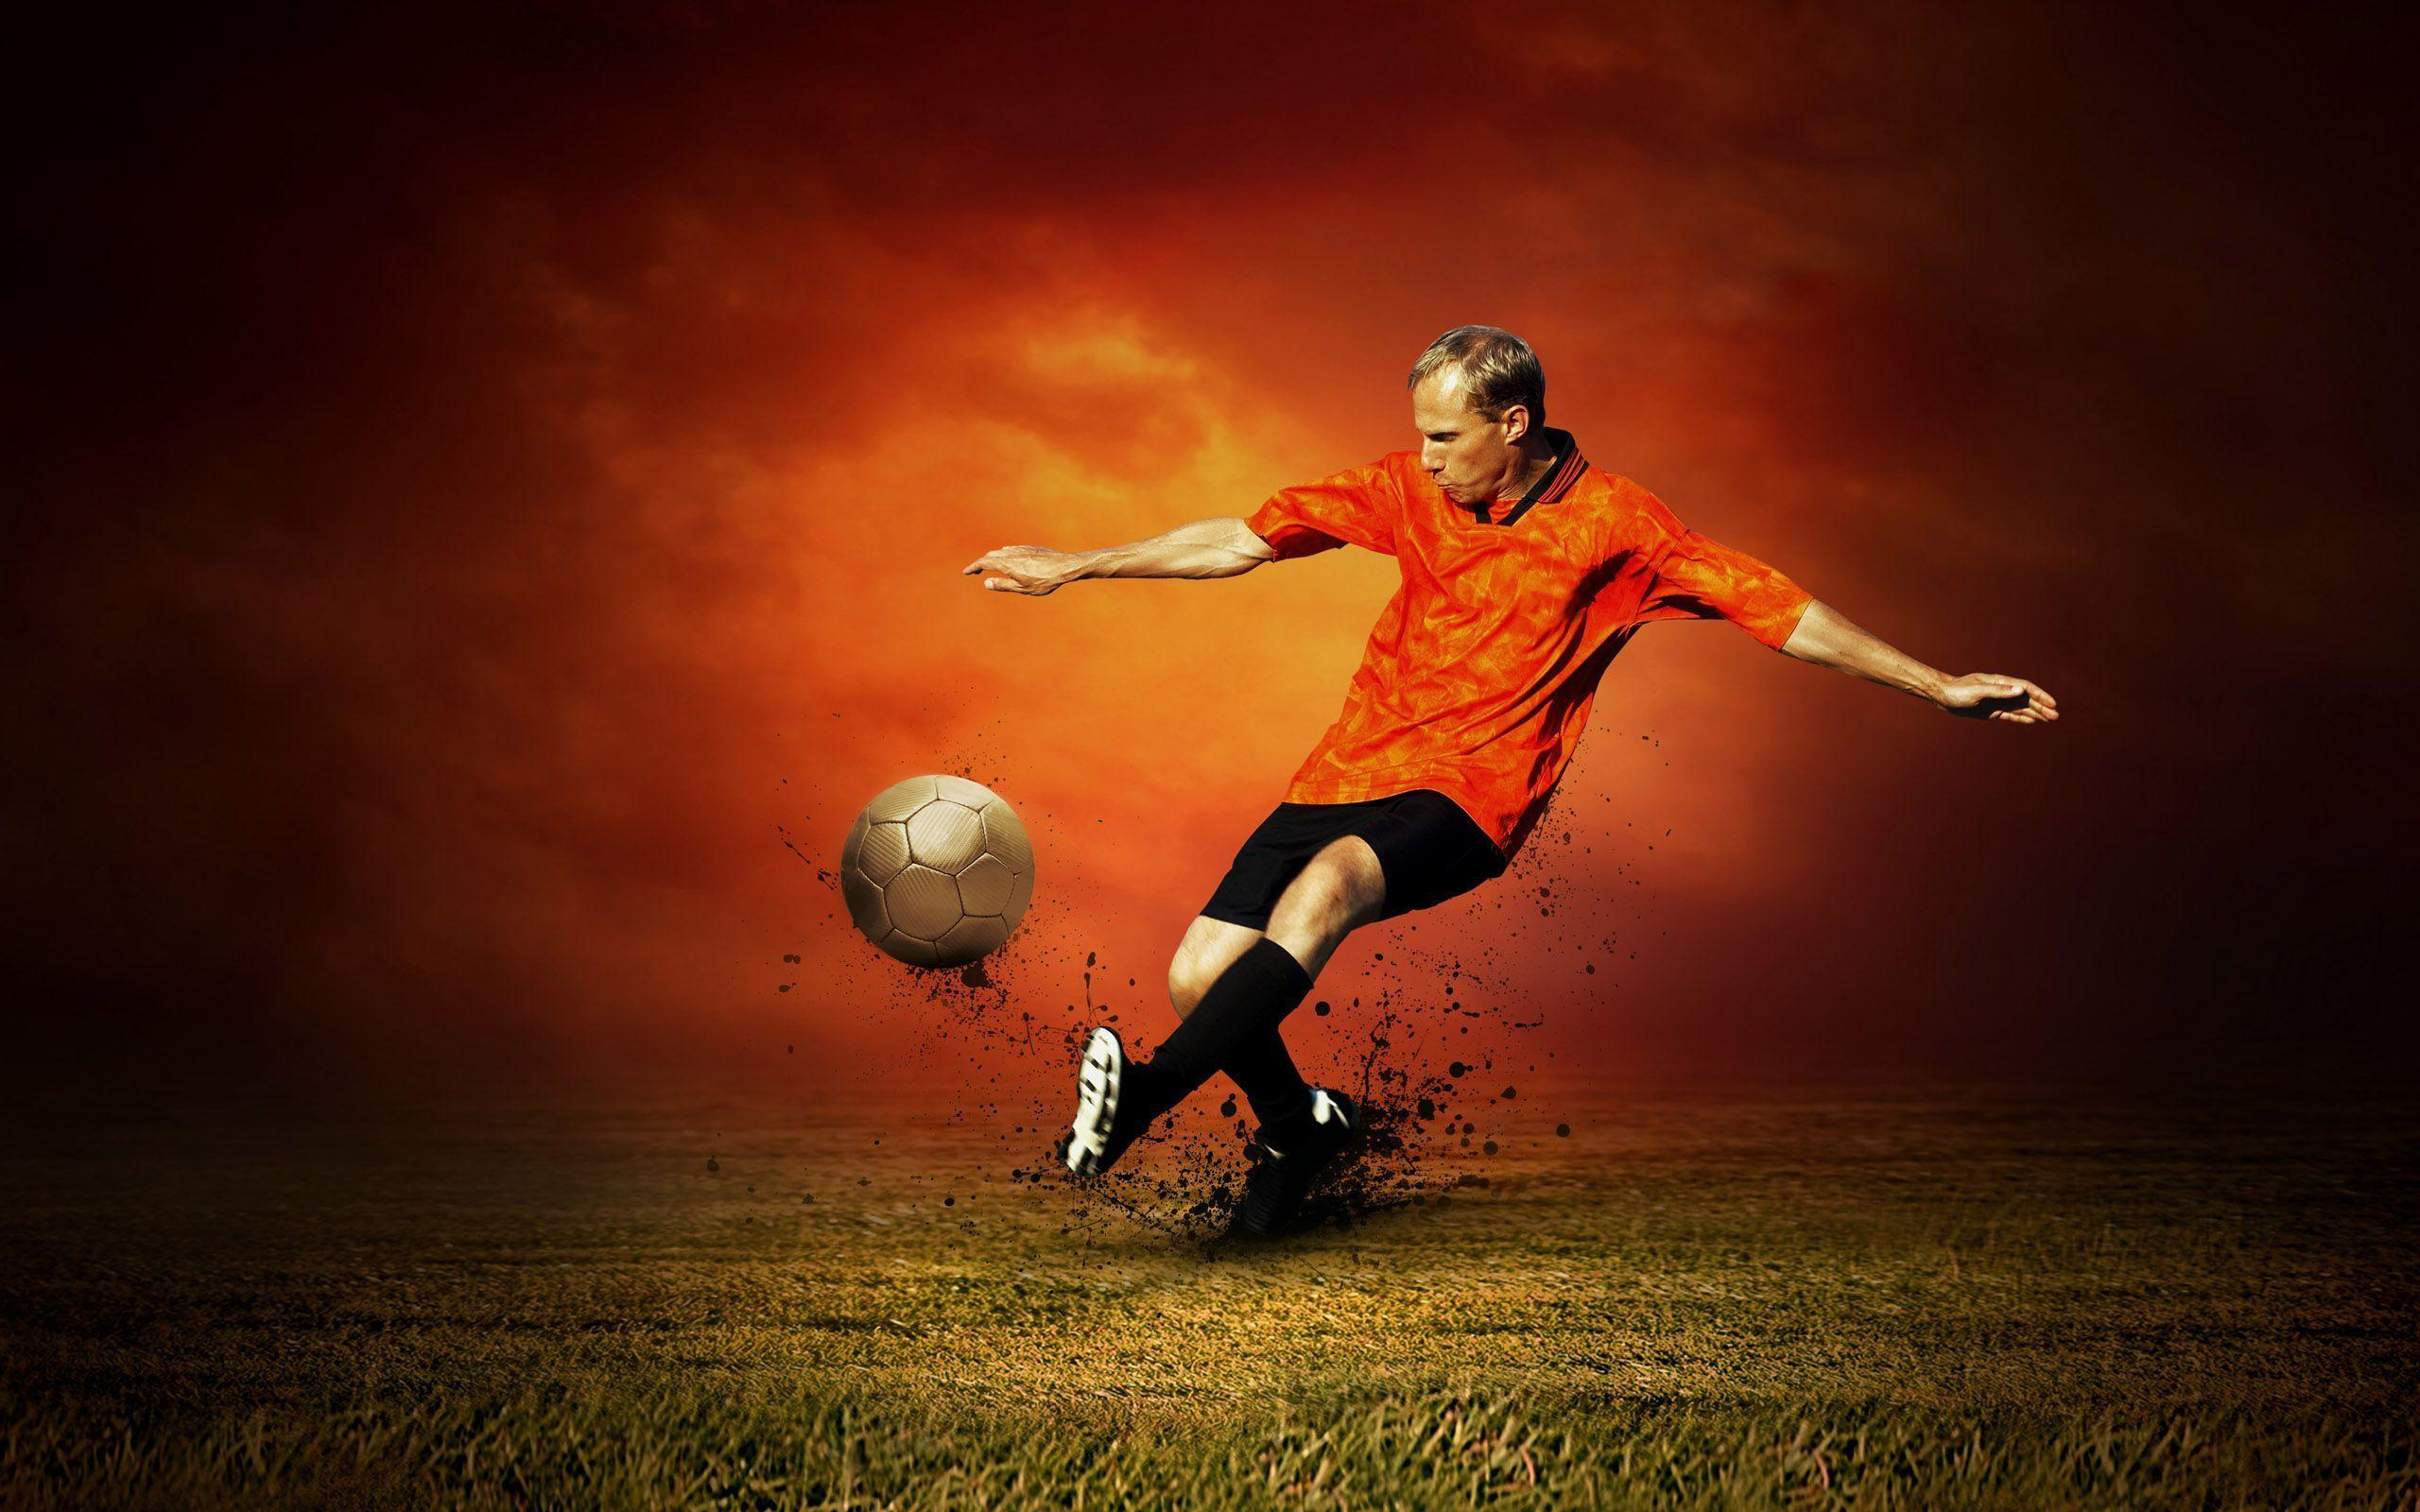 Cool Soccer Backgrounds 2560x1600